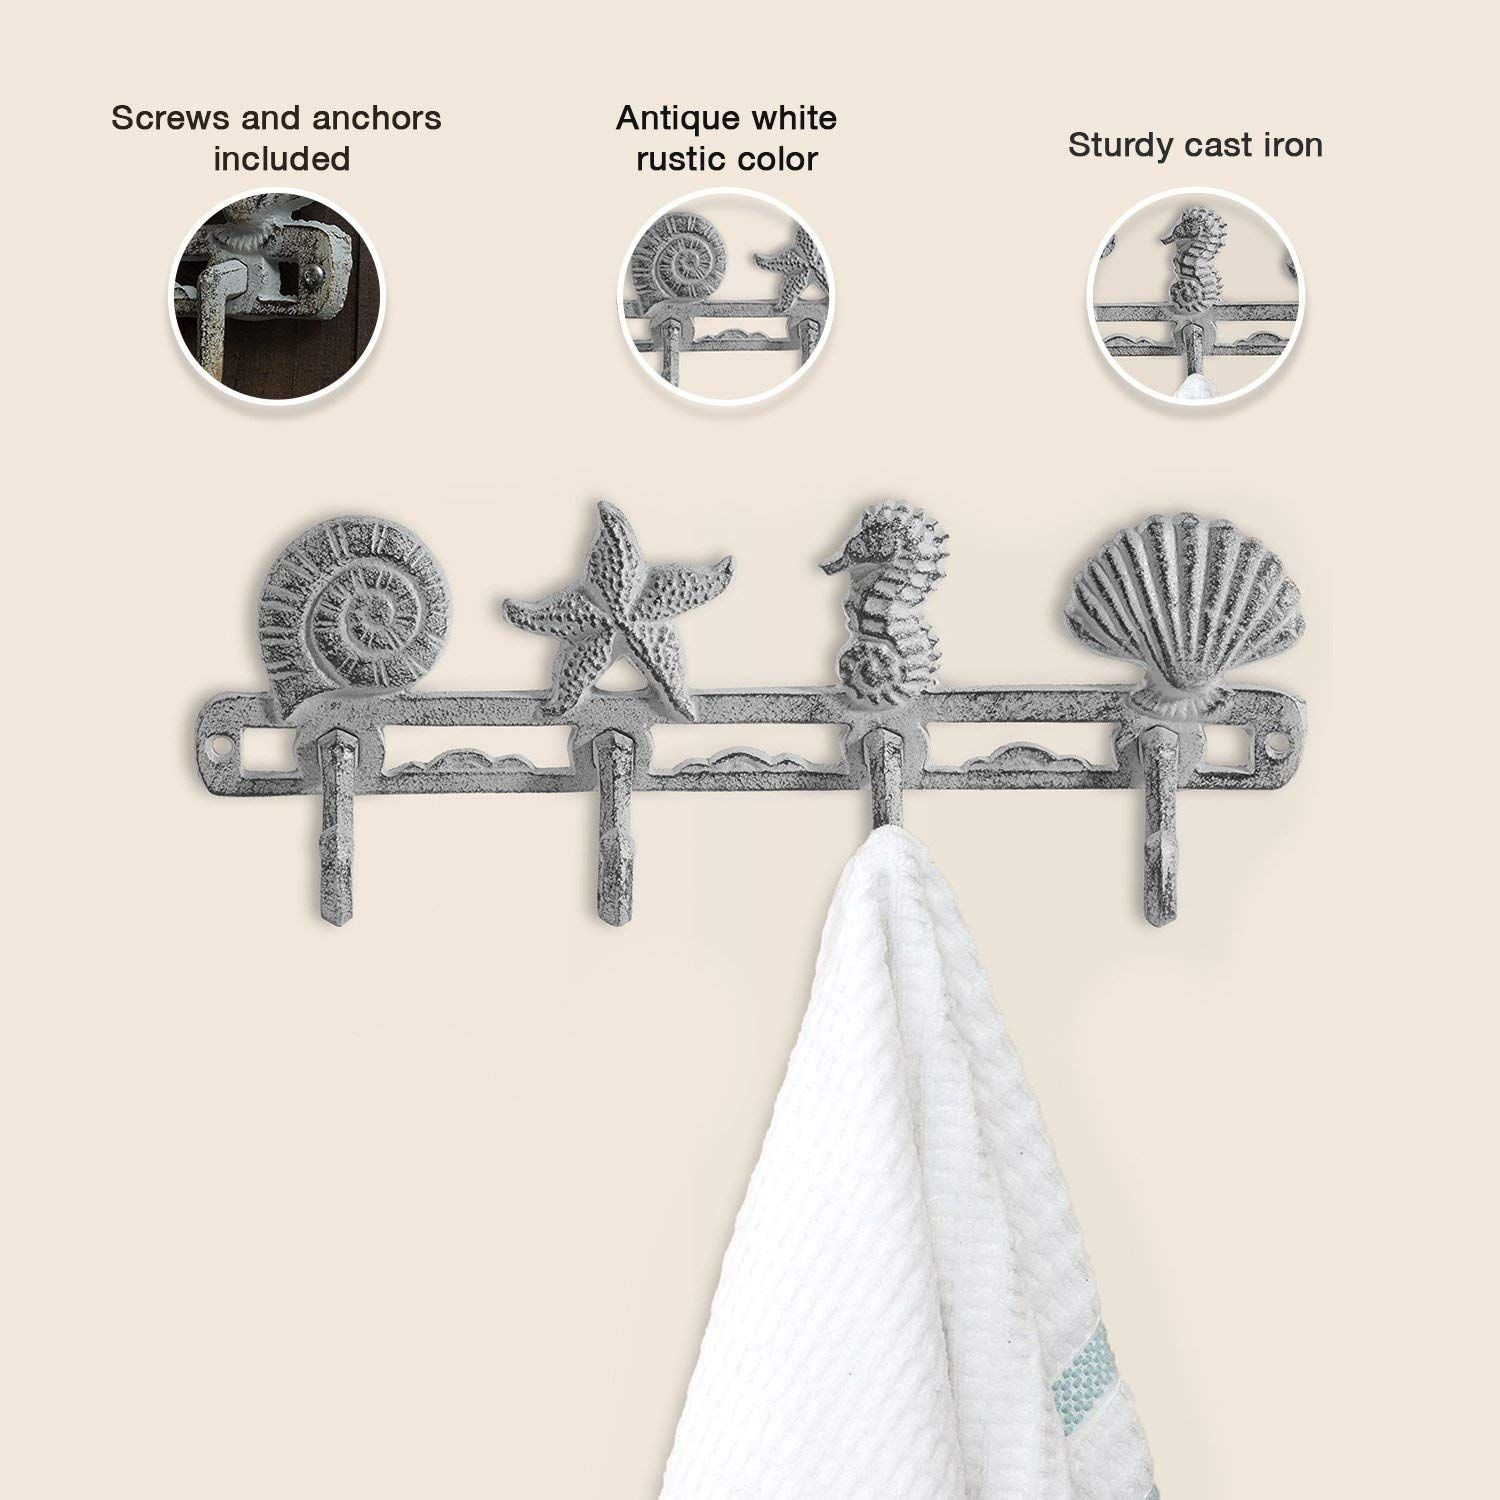 Comfify Vintage Seashell Coat Hook Hanger Rustic Cast Iron Wall Hanger W 4 Decorative Hooks Includes Scre Decorative Wall Hooks Wall Hanger Decorative Hooks